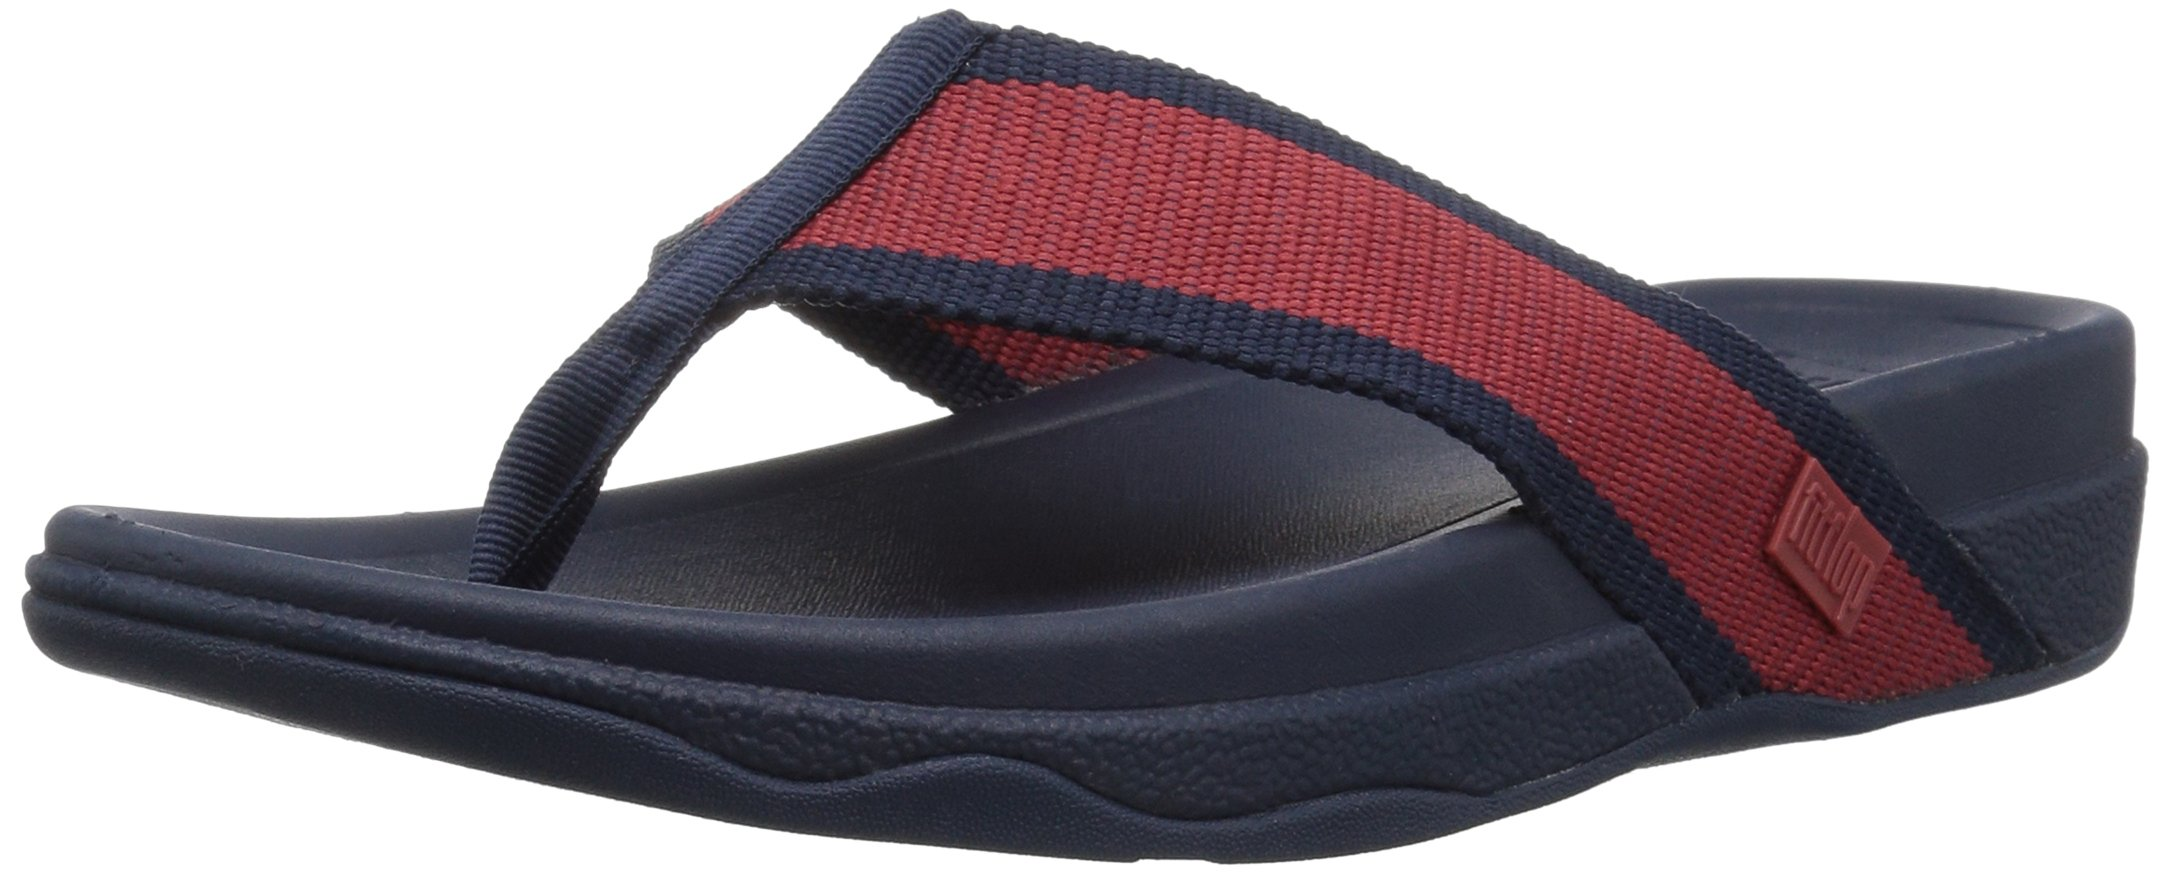 FitFlop Men's Surfer Sandal, Ff Red/Midnight Navy, 8 M US